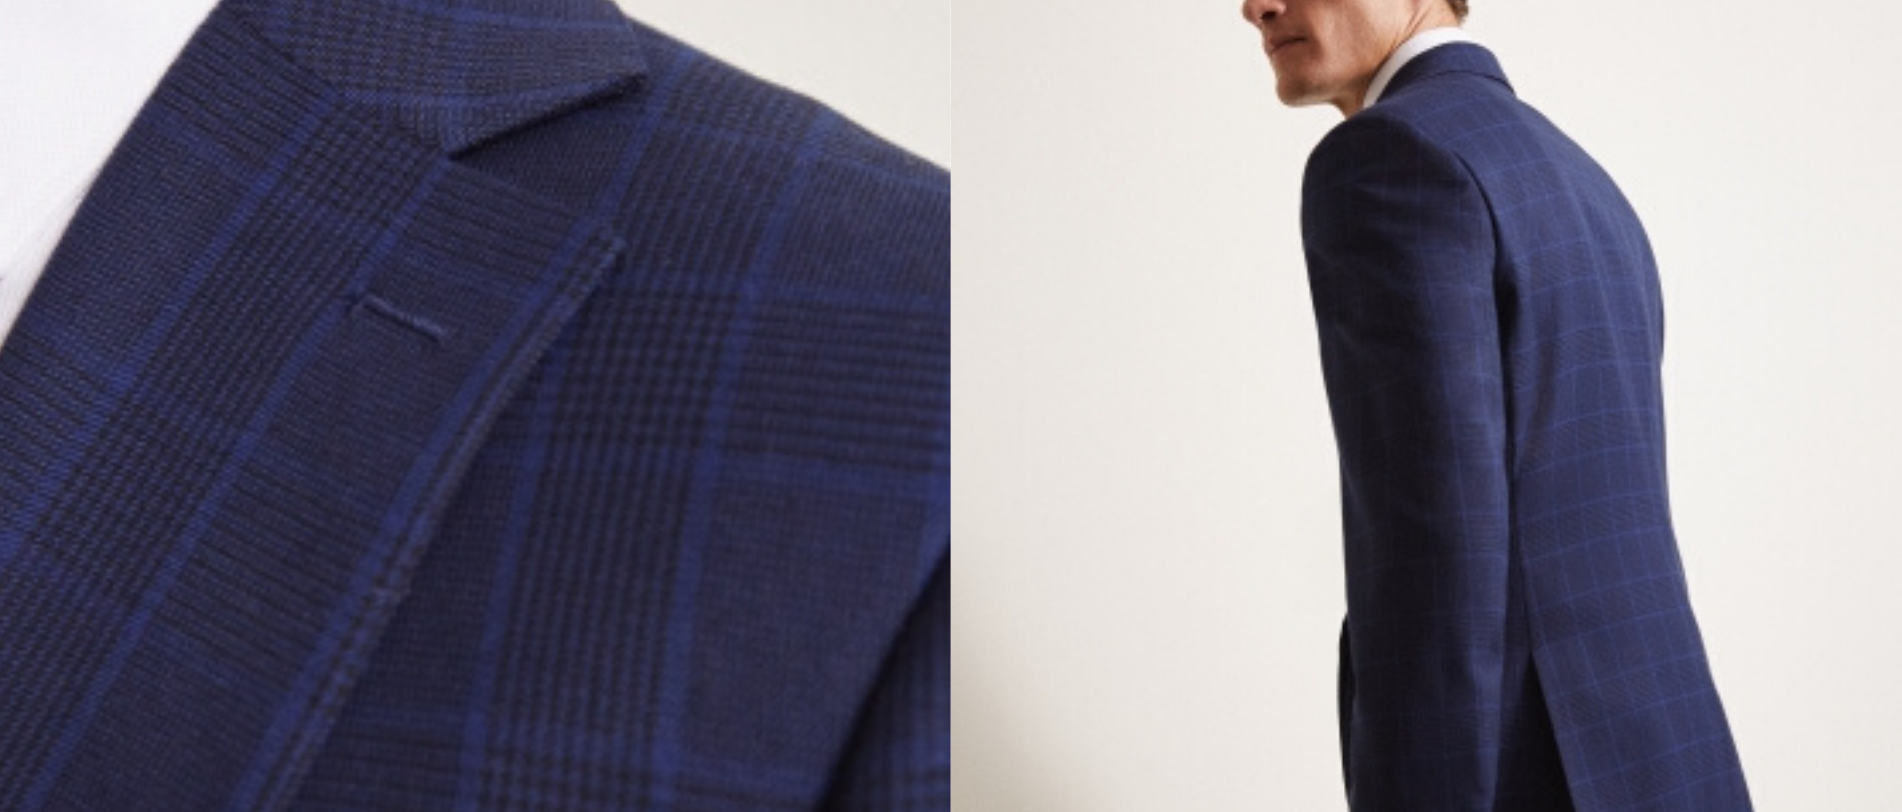 Moss Bros - The Moss London Slim Fit eco Blue Check Suit